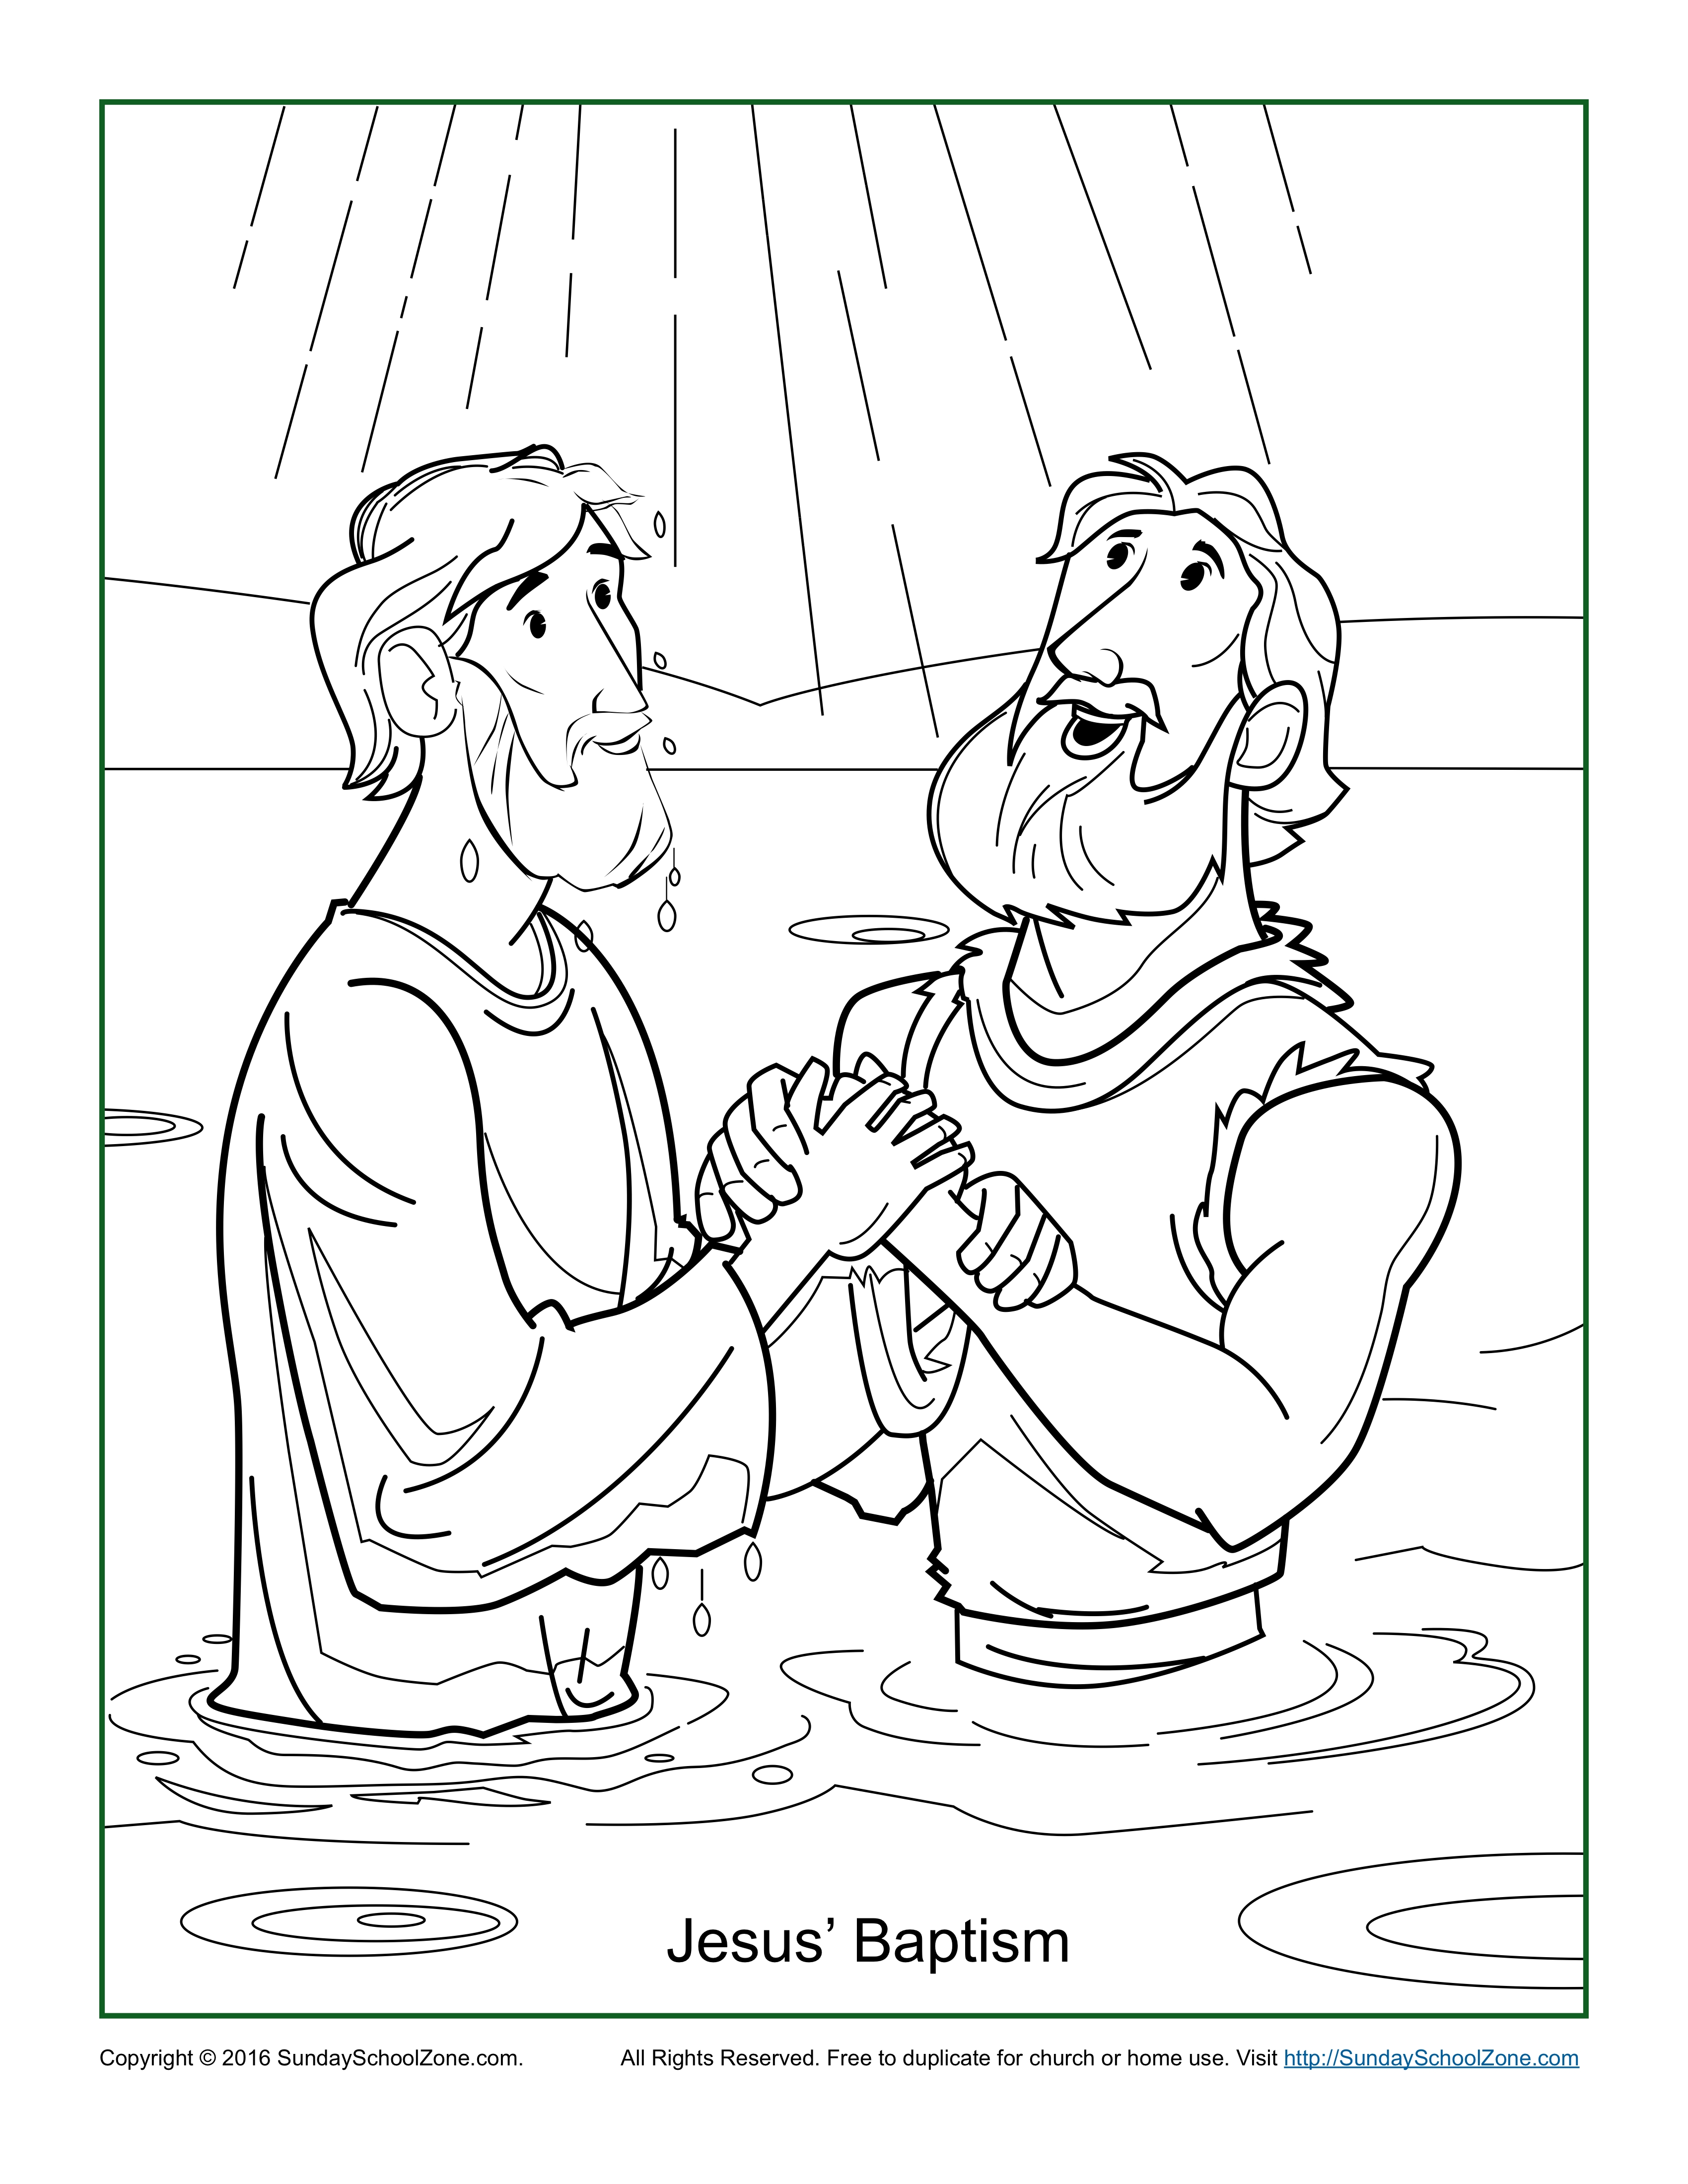 jesus baptism coloring page - jesus baptism coloring page